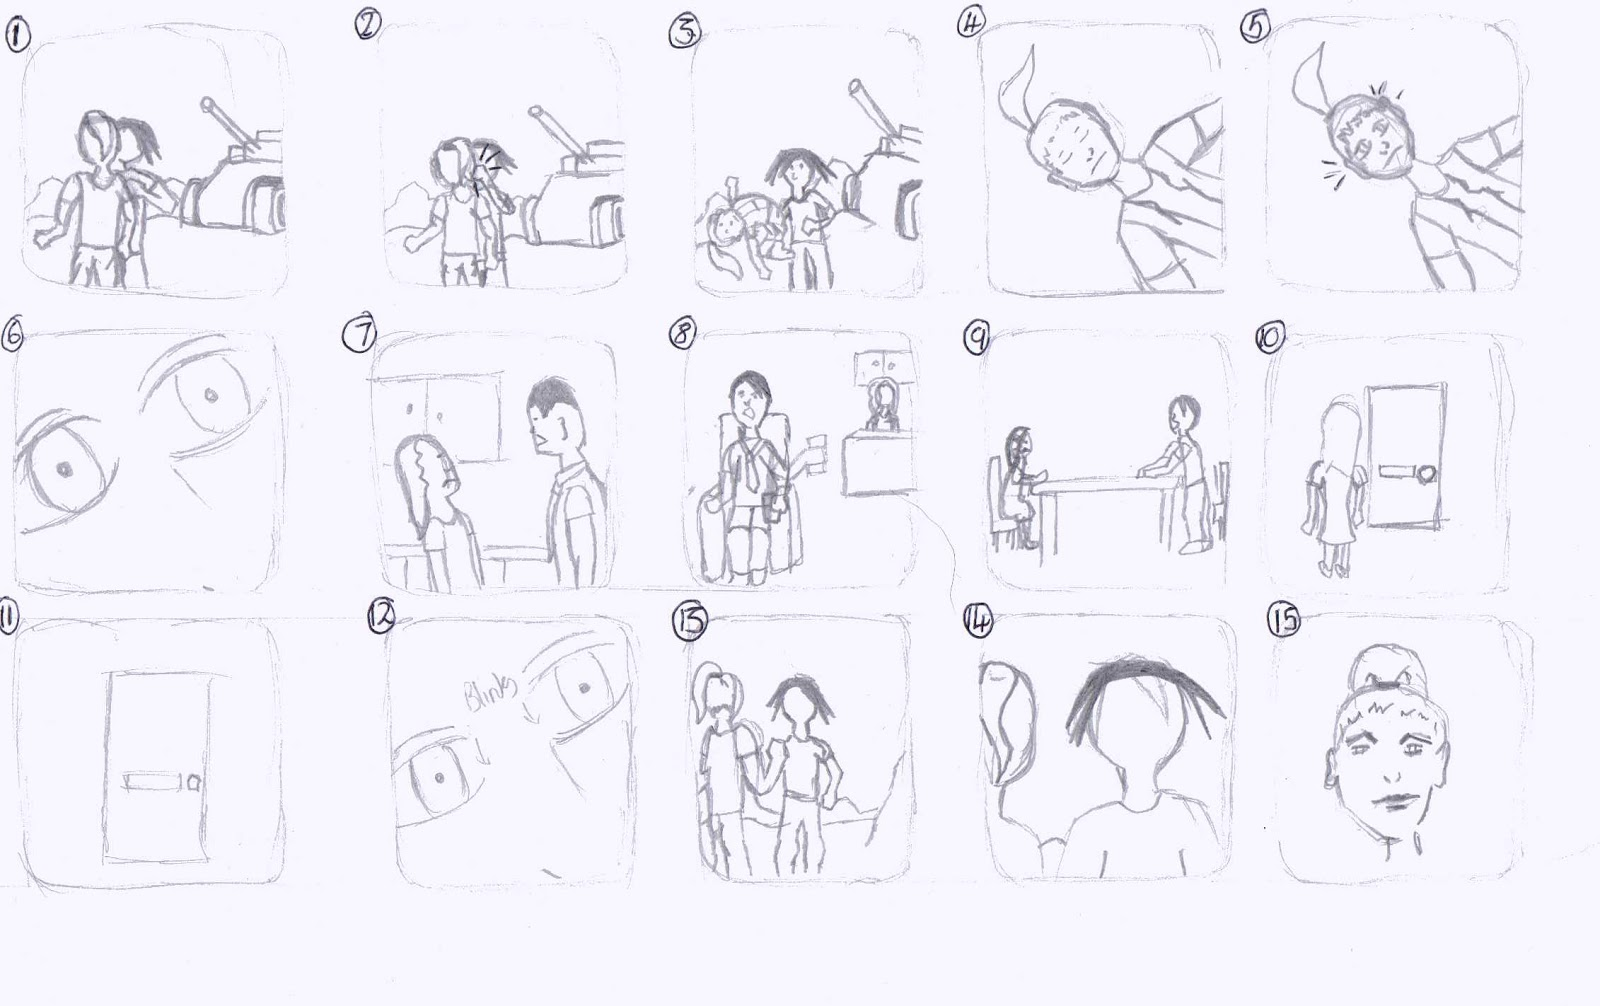 Scolded: Thumbnail storyboard